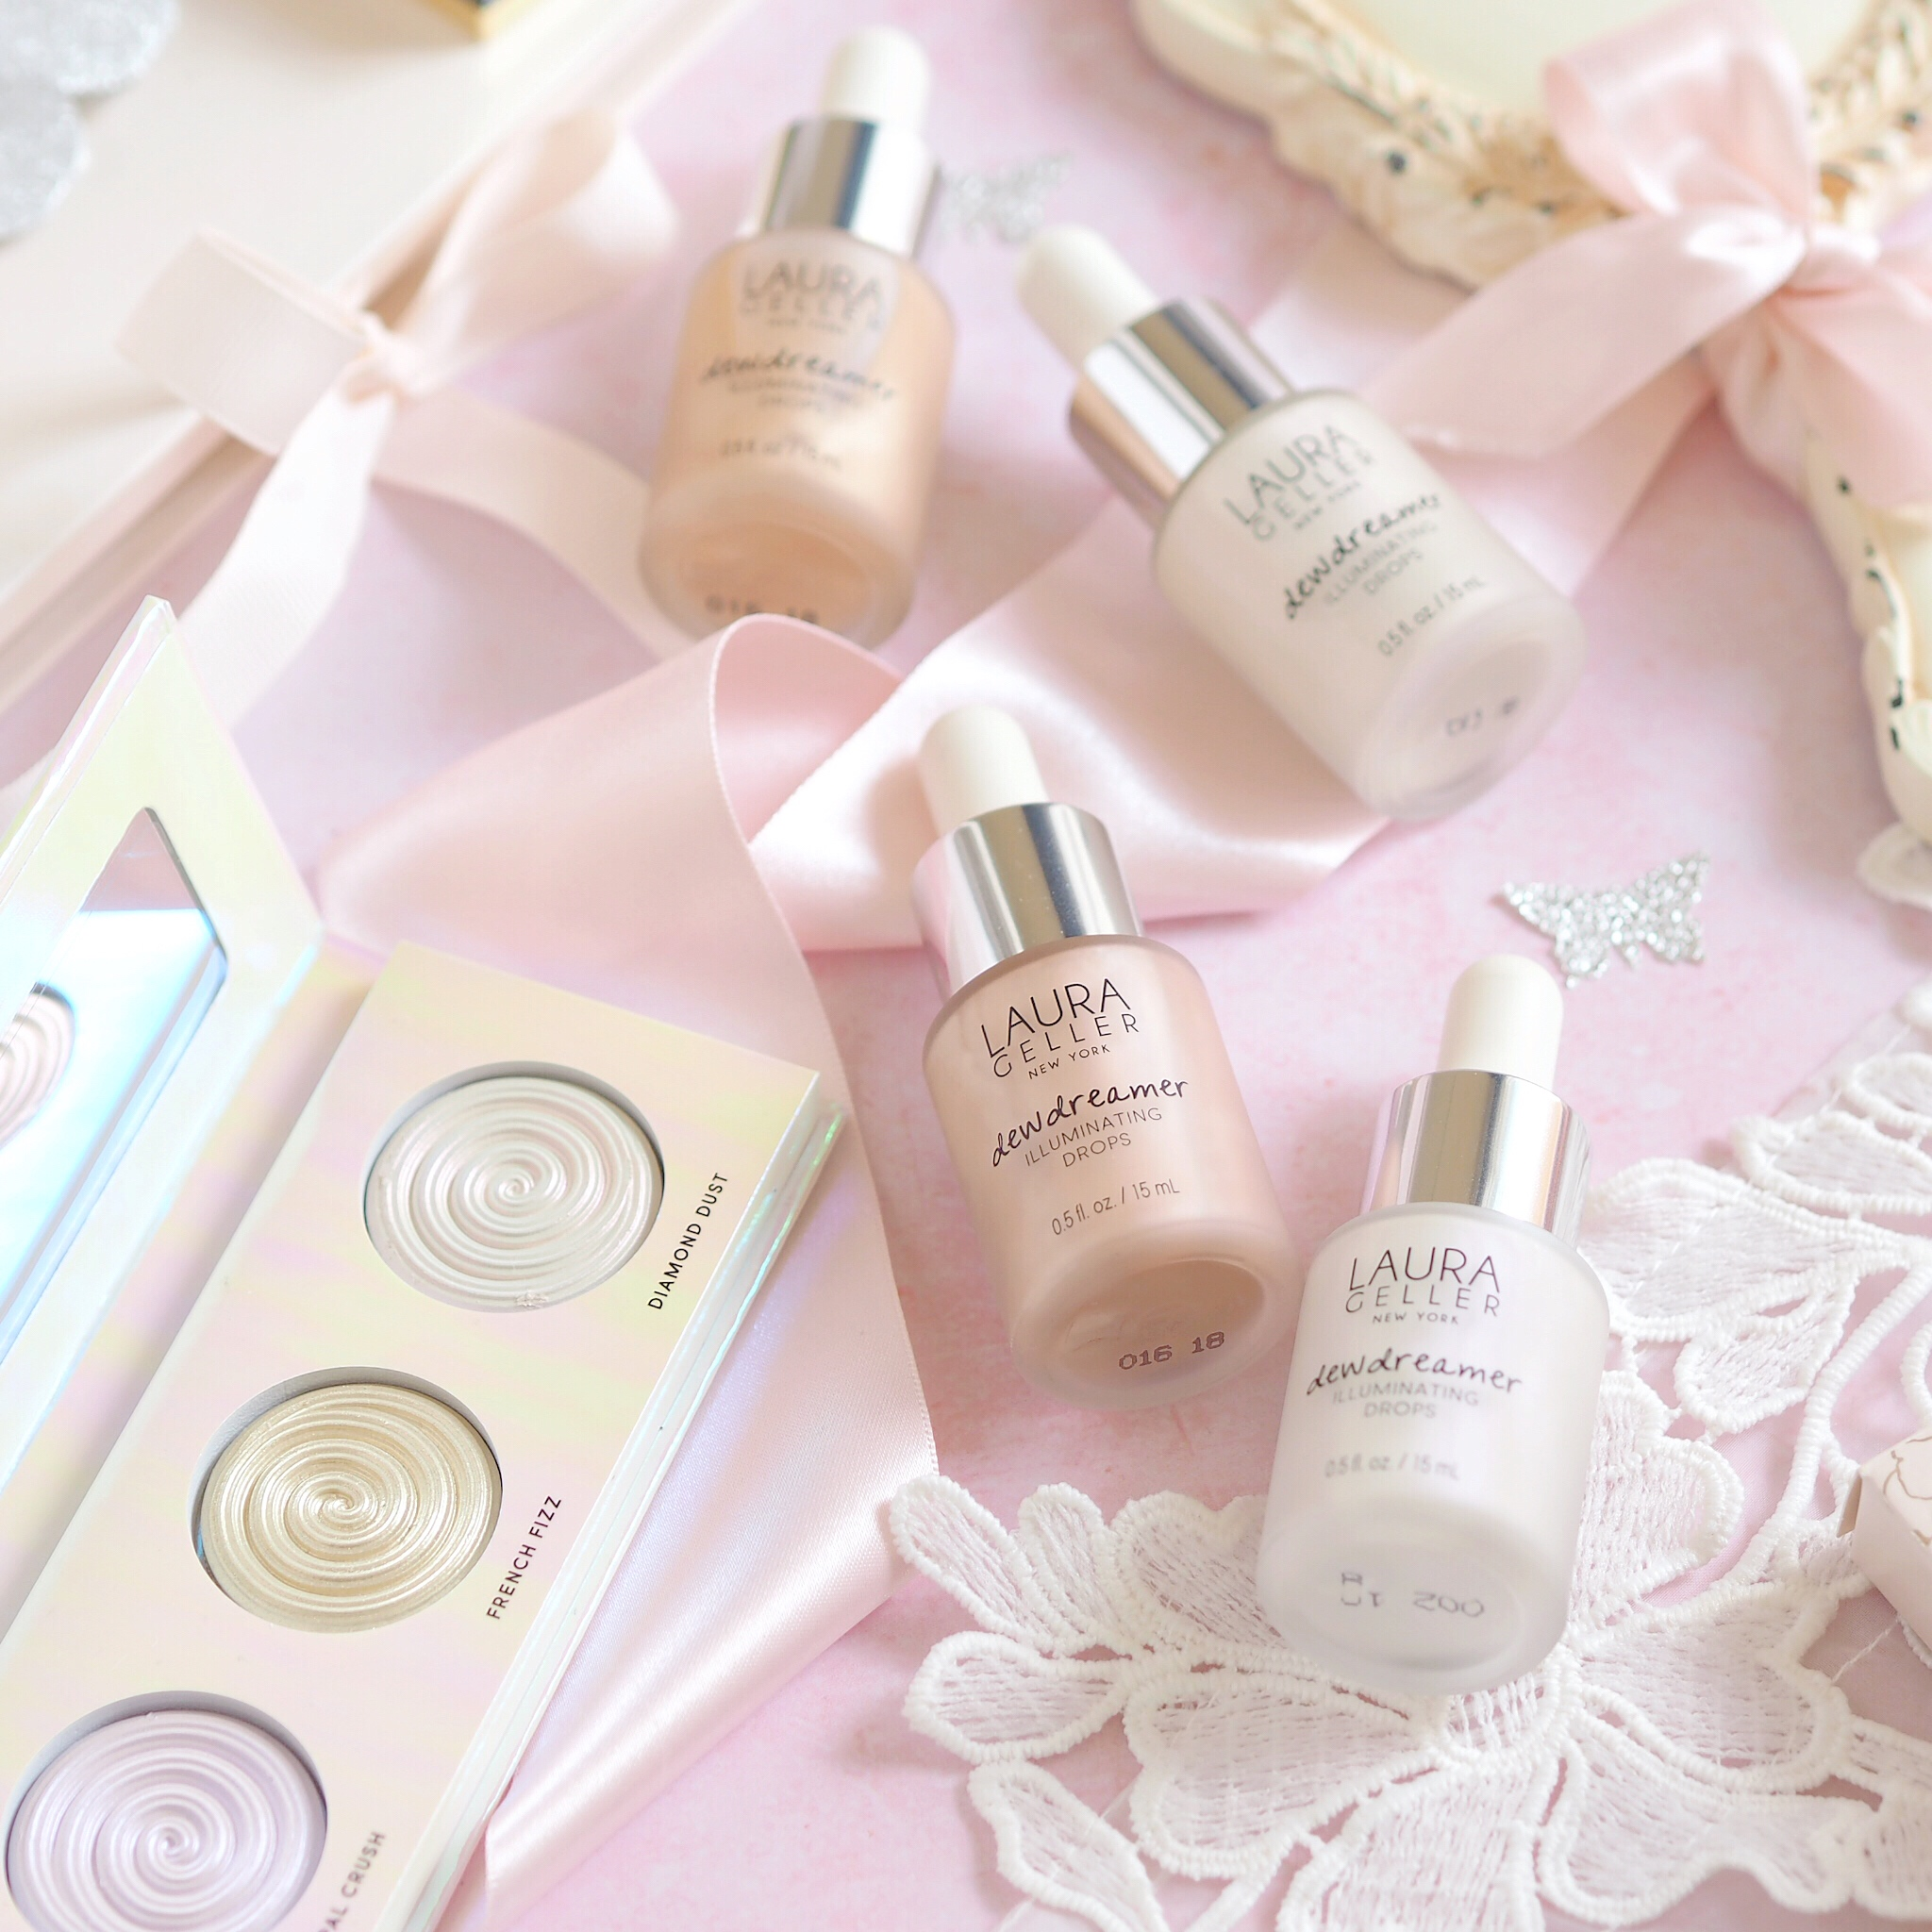 Laura Gellar Dew Dreamer | 7 Pretty New Products In My Beauty Drawers